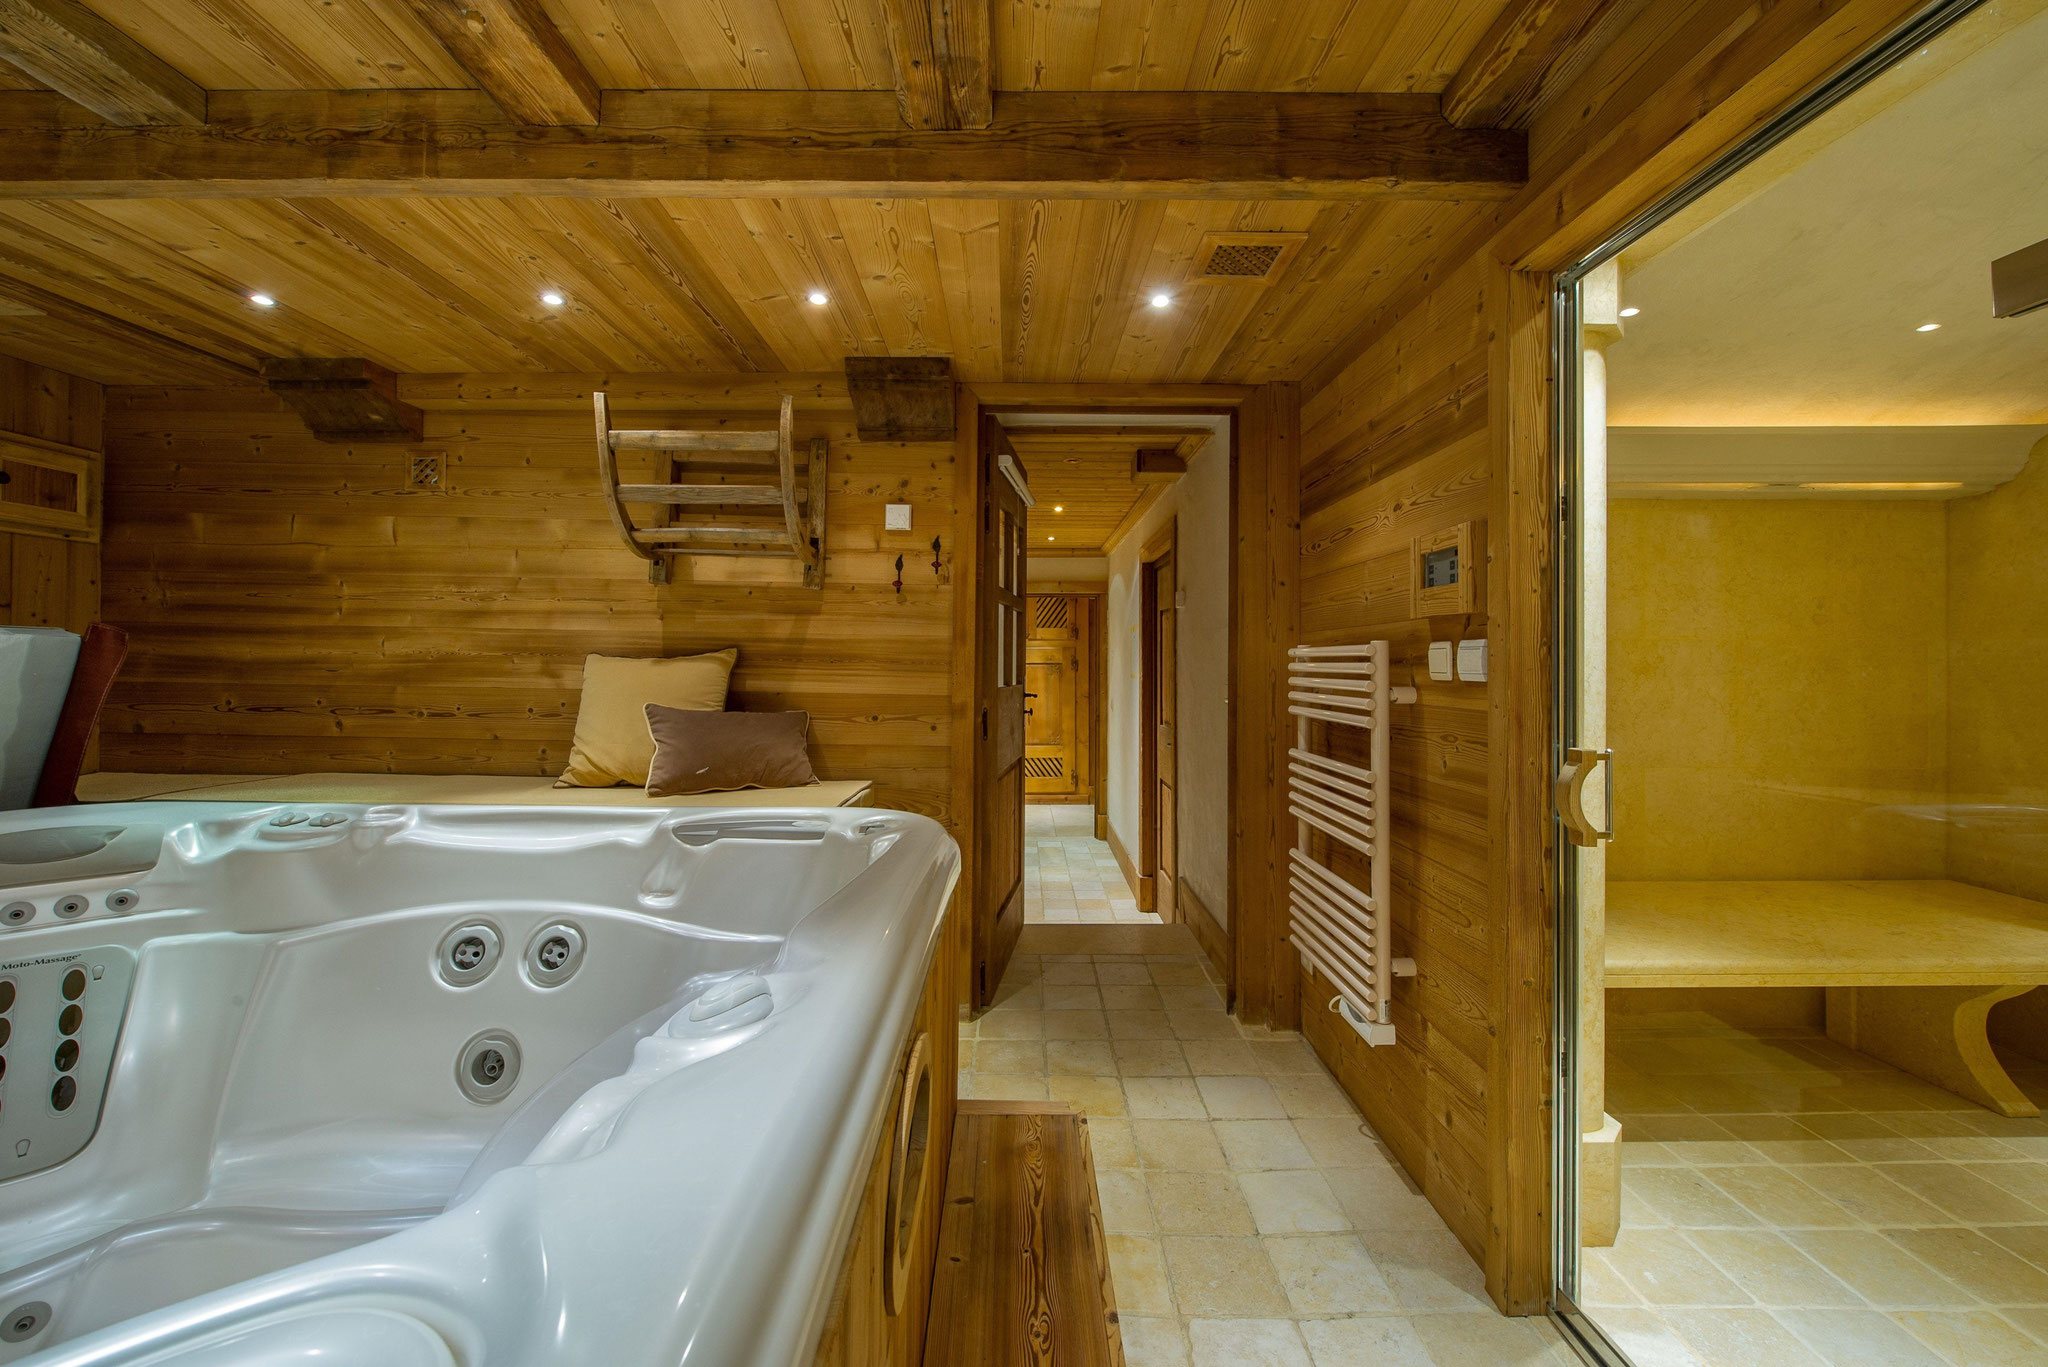 Hamam München luxury chalets ski in ski out luxury skiing made in germany